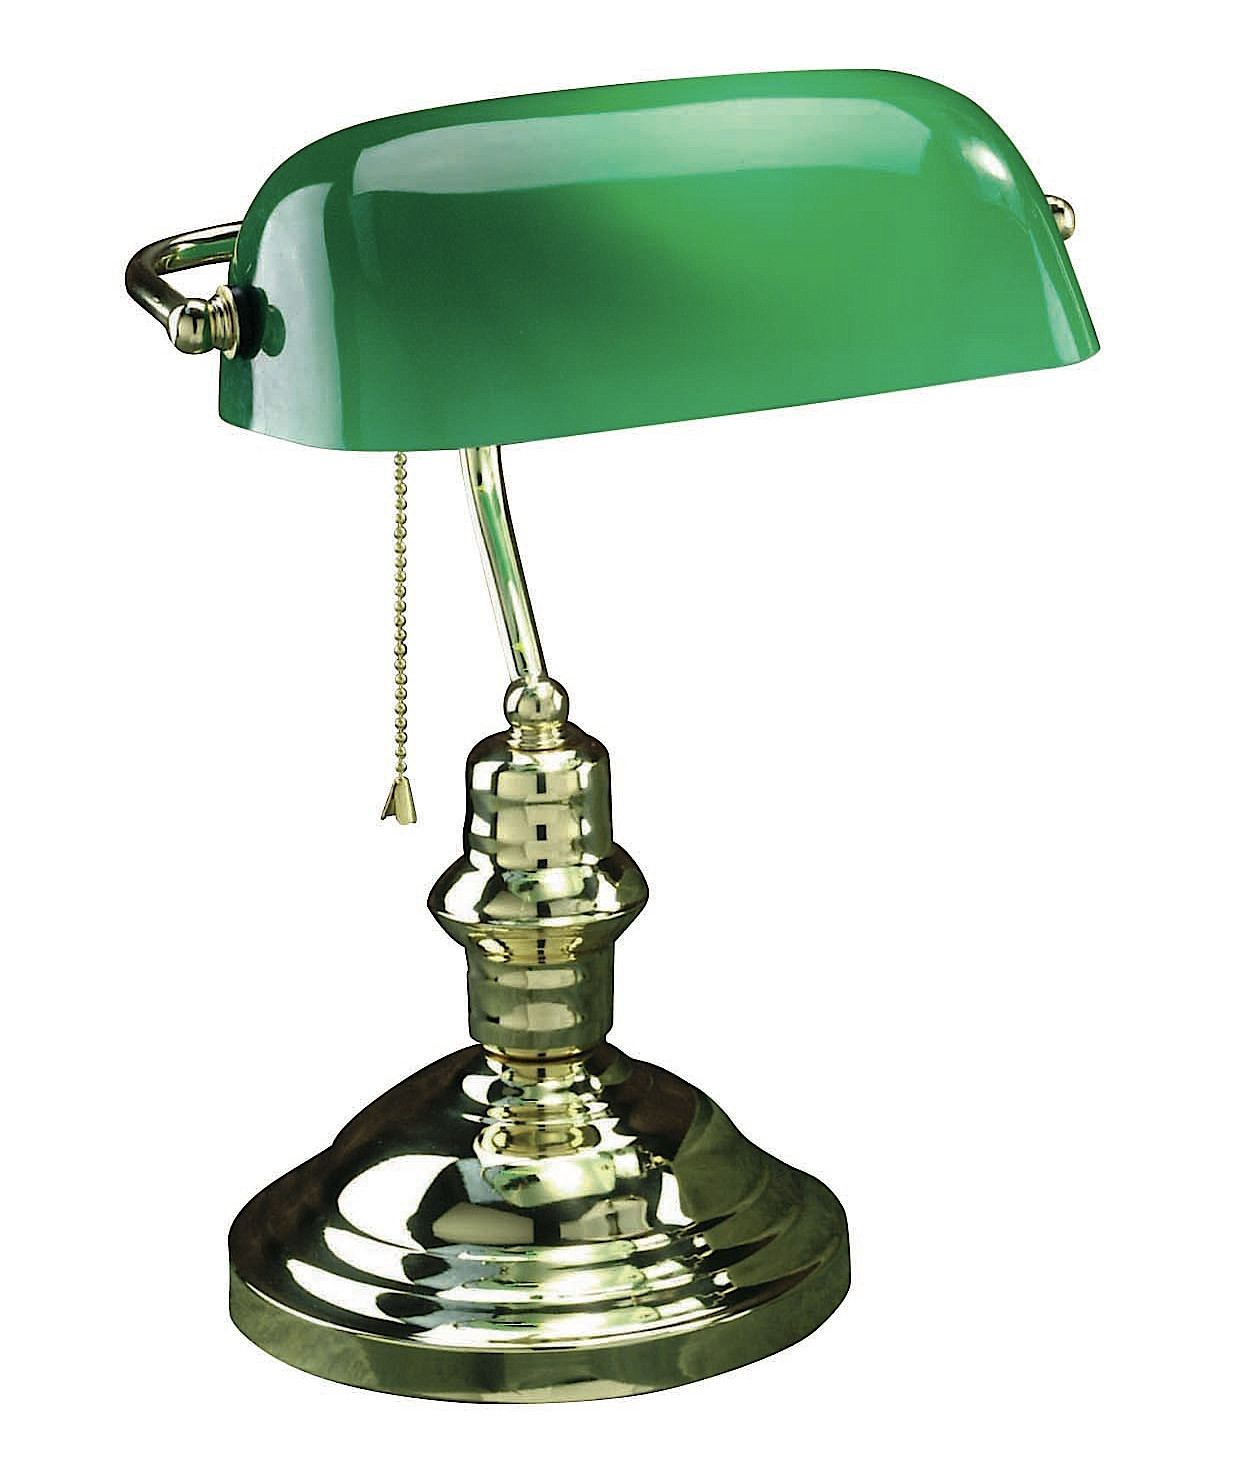 Best ideas about Green Desk Lamp . Save or Pin Green desk lamp Now.